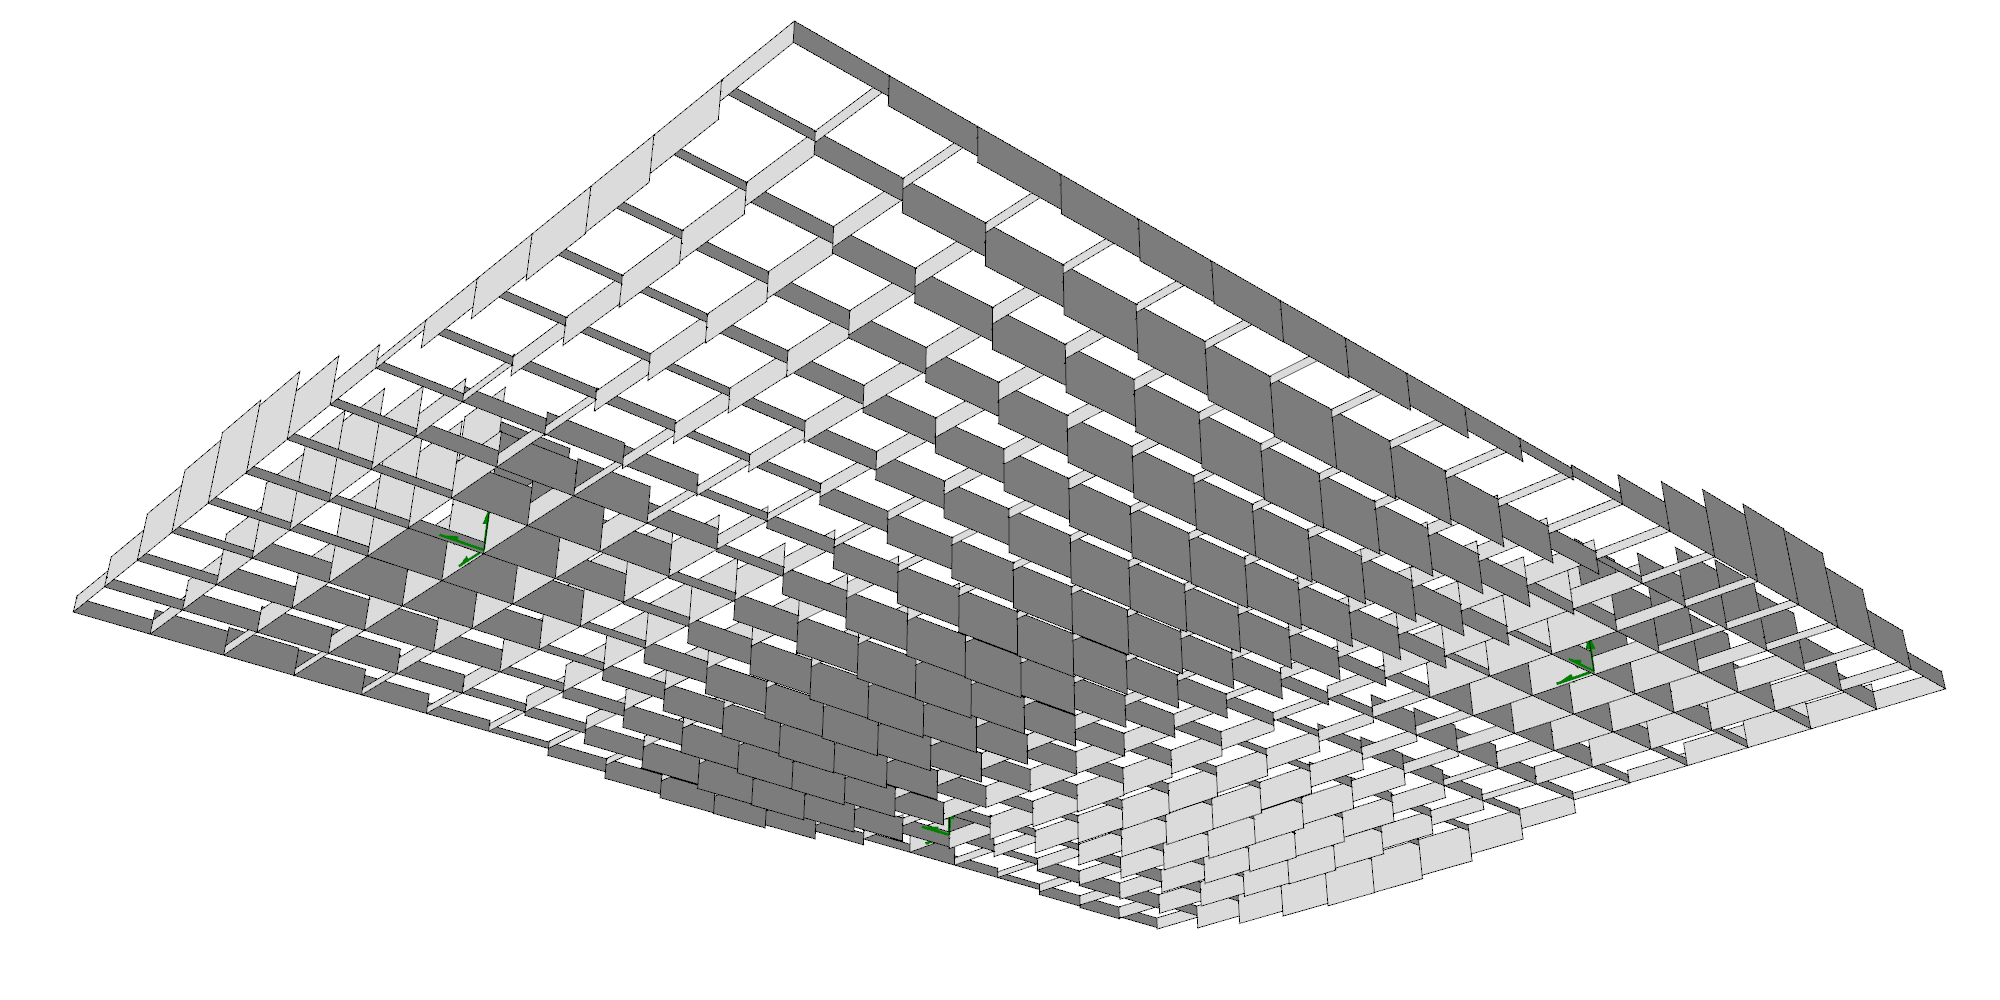 05_CrossSectionHeightsFromMoments